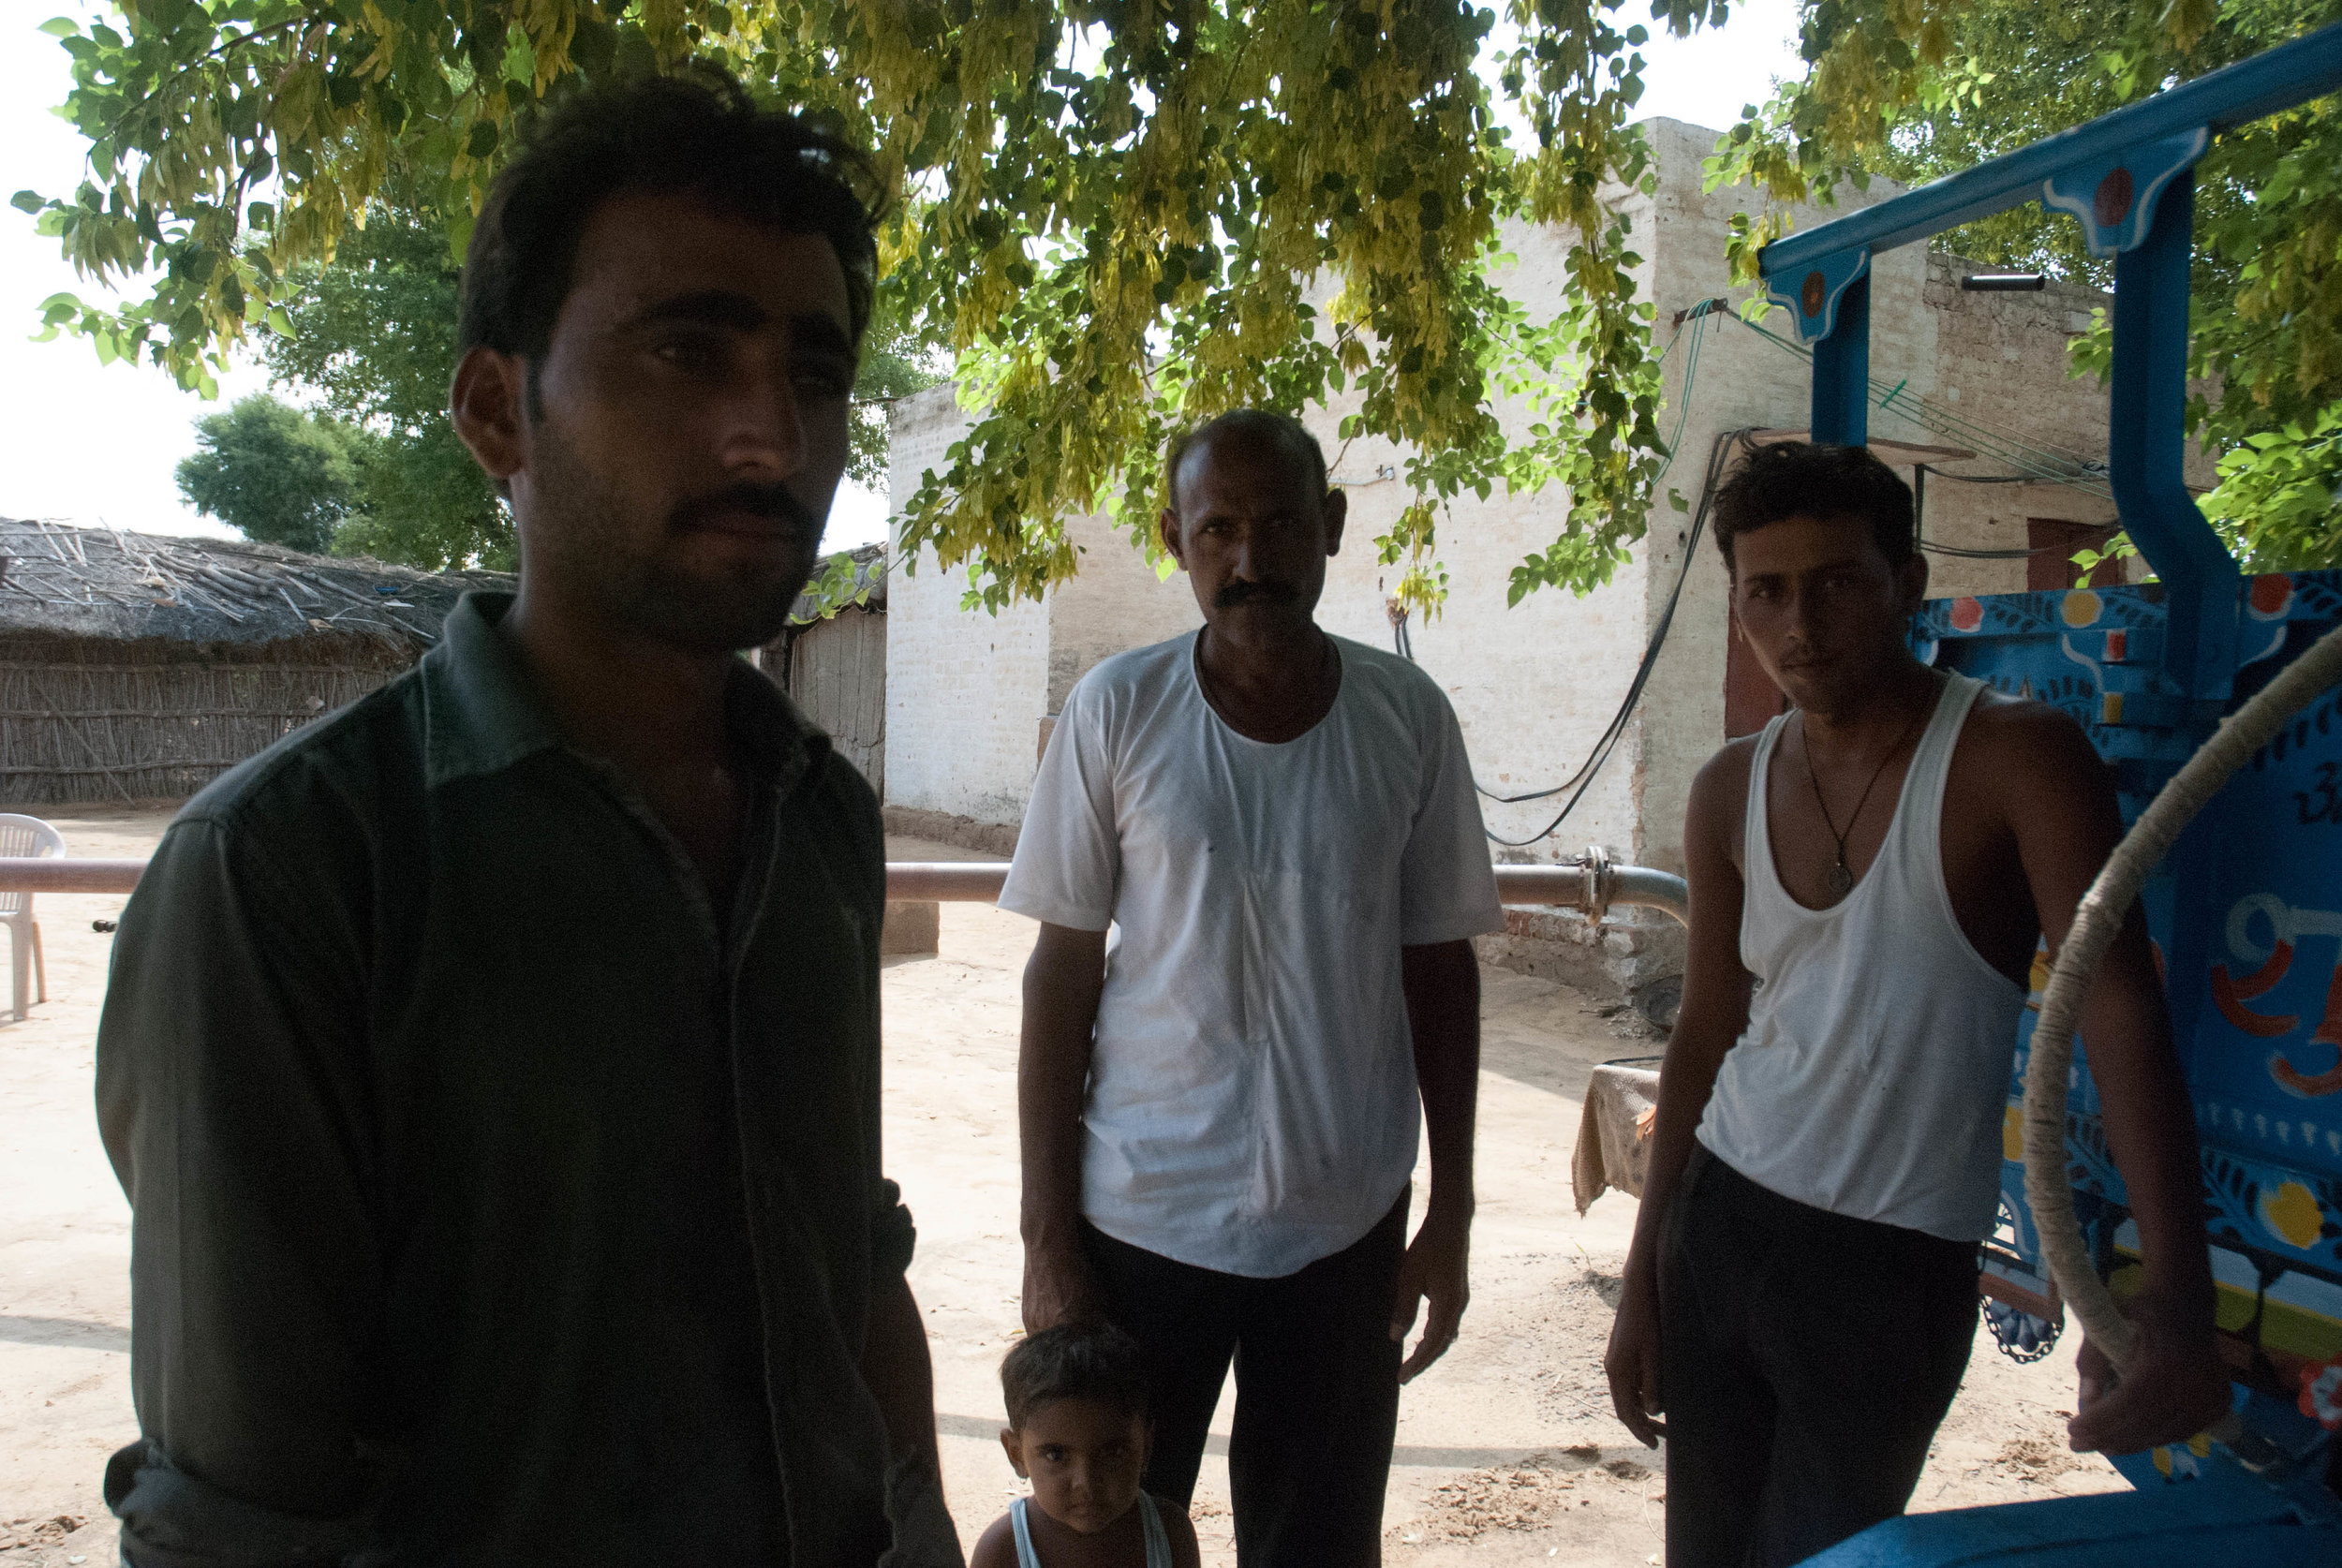 The men of the Siddh family. The father (in the back) works on the farm while his two sons work as tractor drivers.